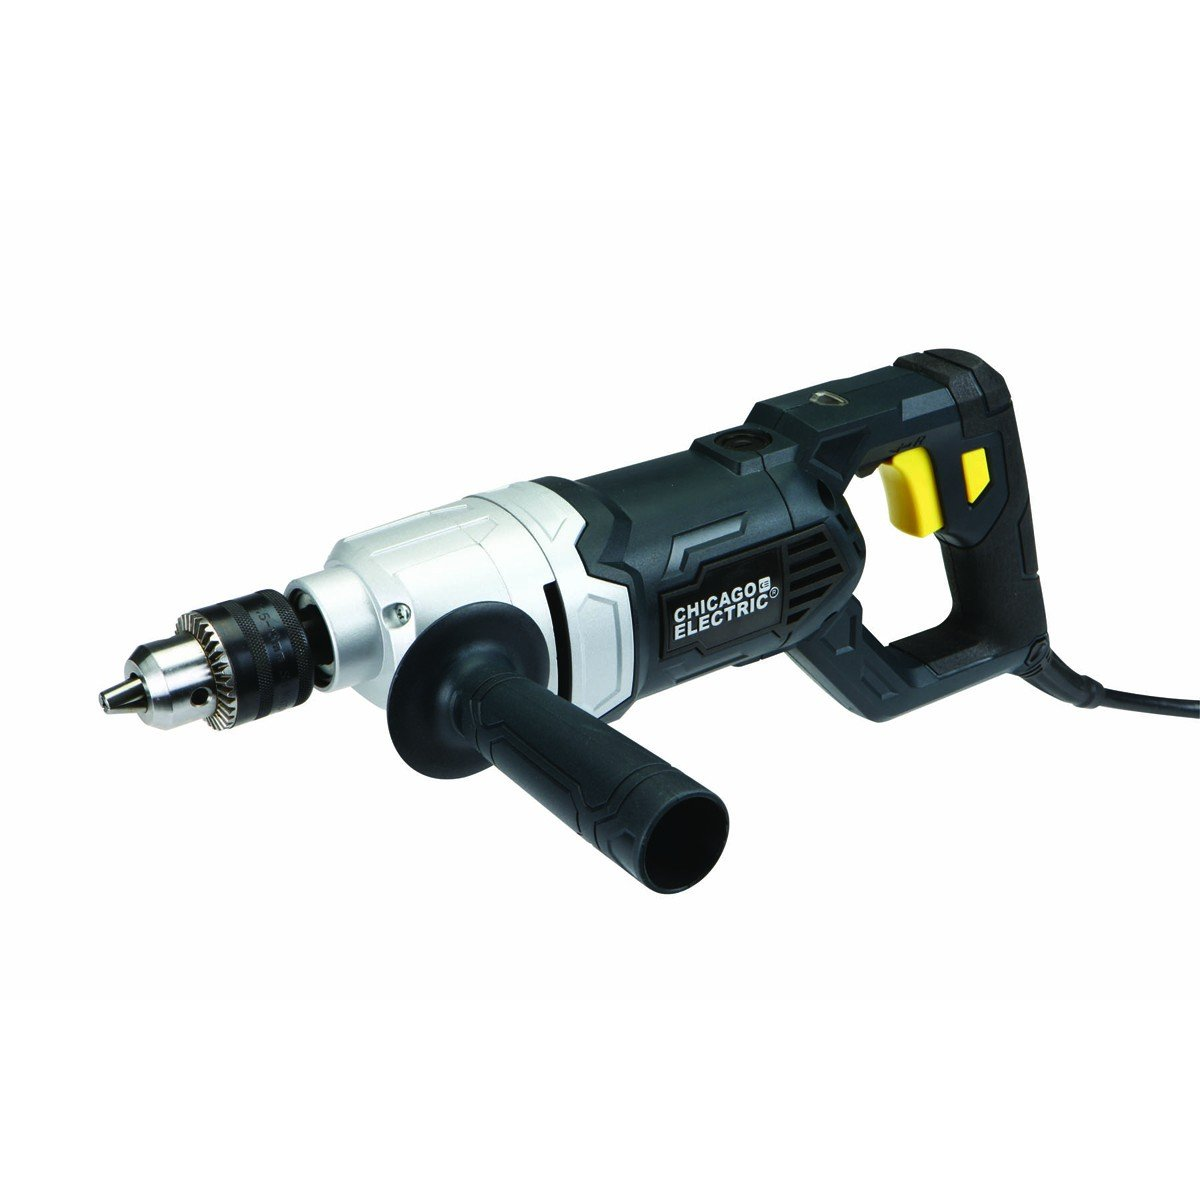 Chicago Electric Power Tools 1/2'' Variable Speed Reversible Heavy Duty D-Handle Drill